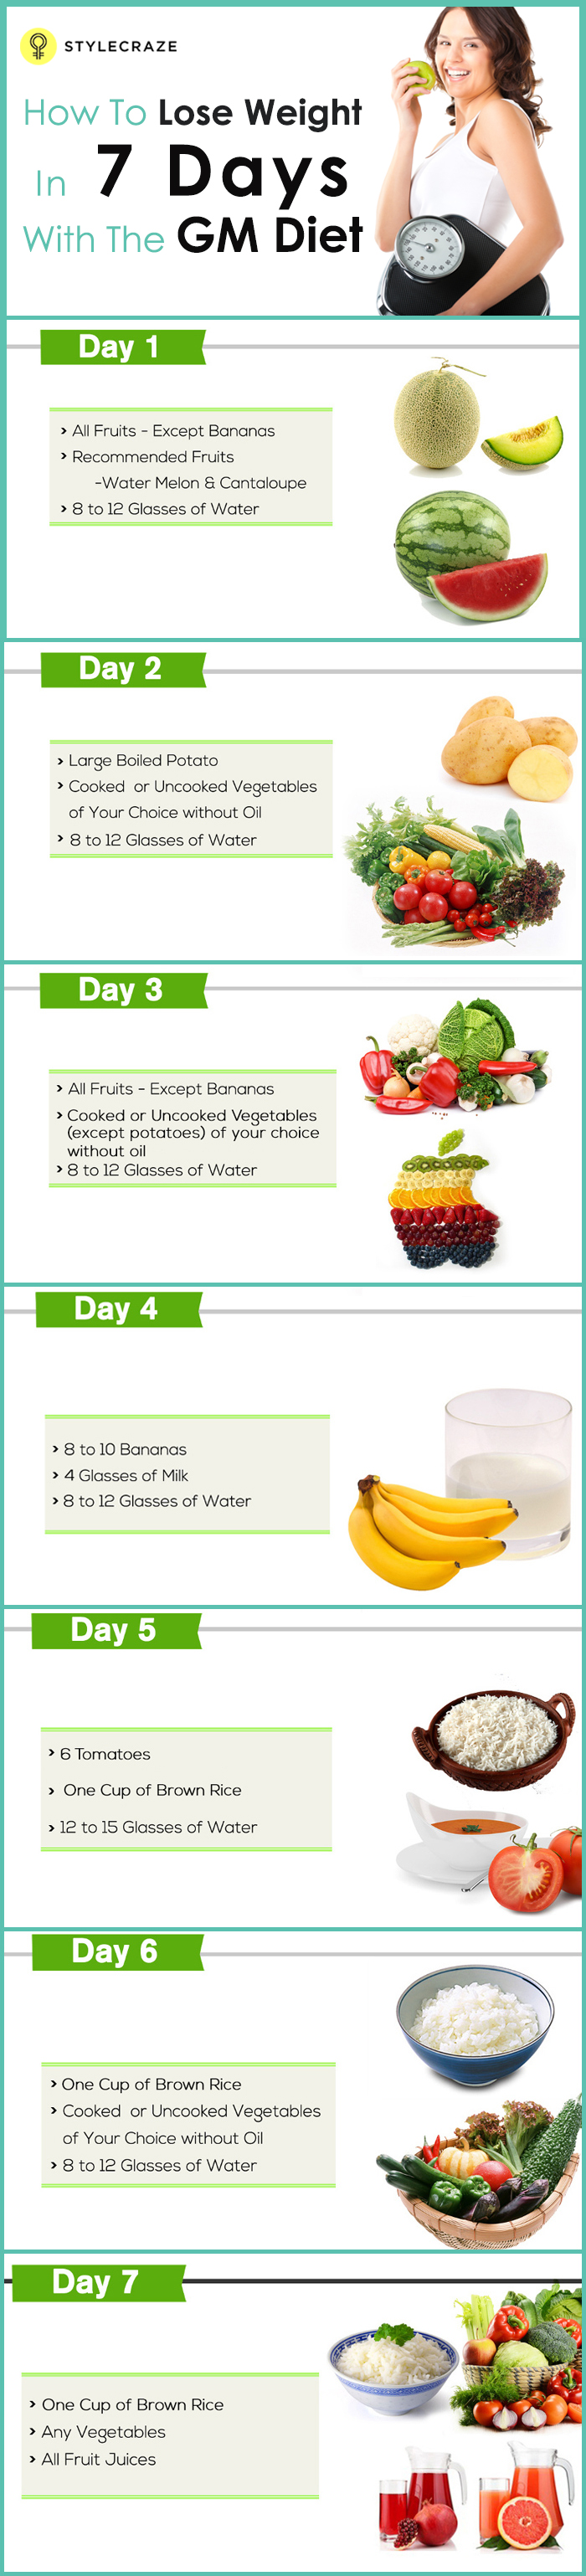 what is the 7 day diet plan